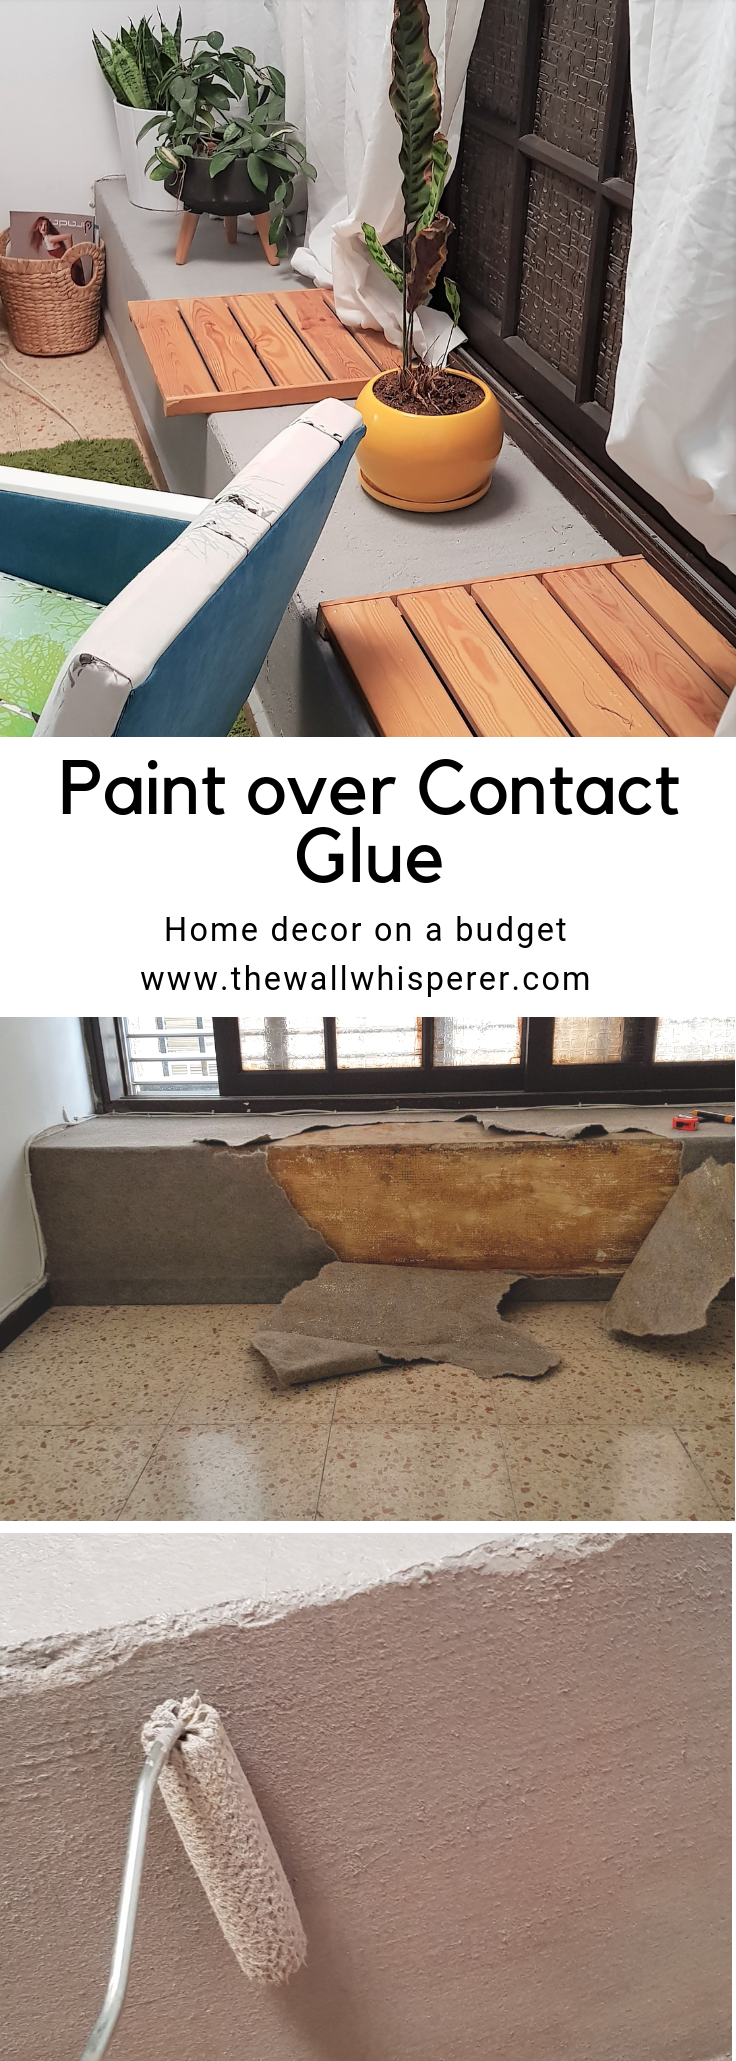 Cement Bench Paint Over Contact Glue What To Do When You Can T Remove Contact Glue With Images Cement Bench Cement Crafts Farmhouse Diy